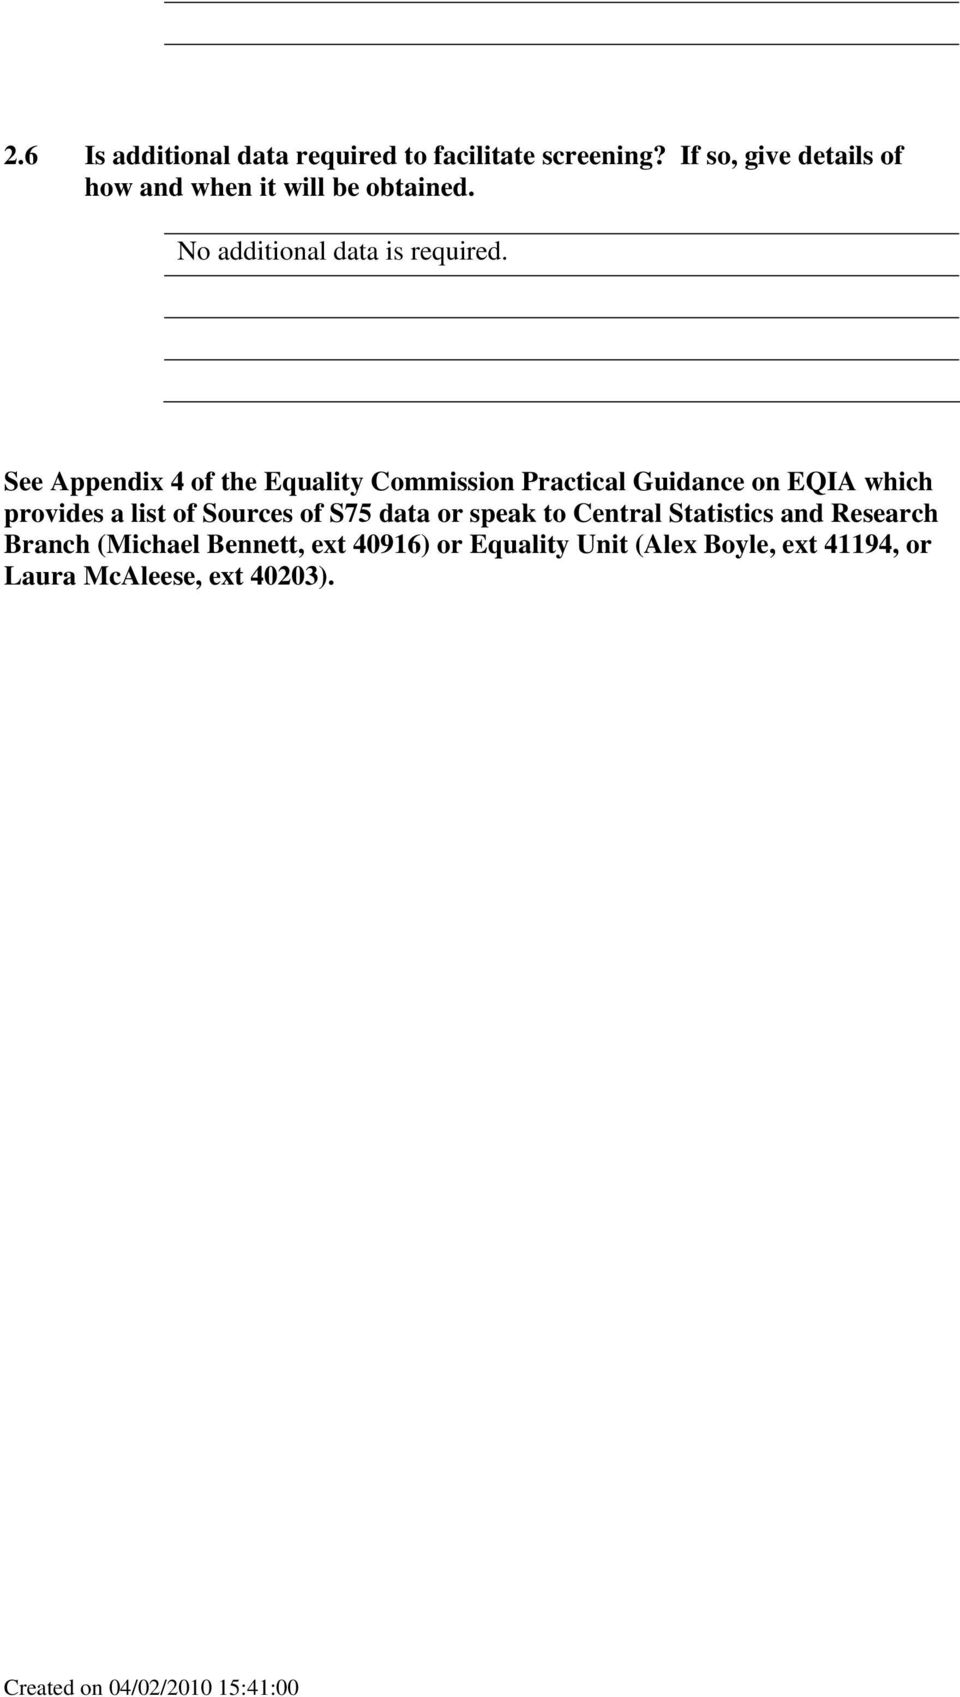 See Appendix 4 of the Equality Commission Practical Guidance on EQIA which provides a list of Sources